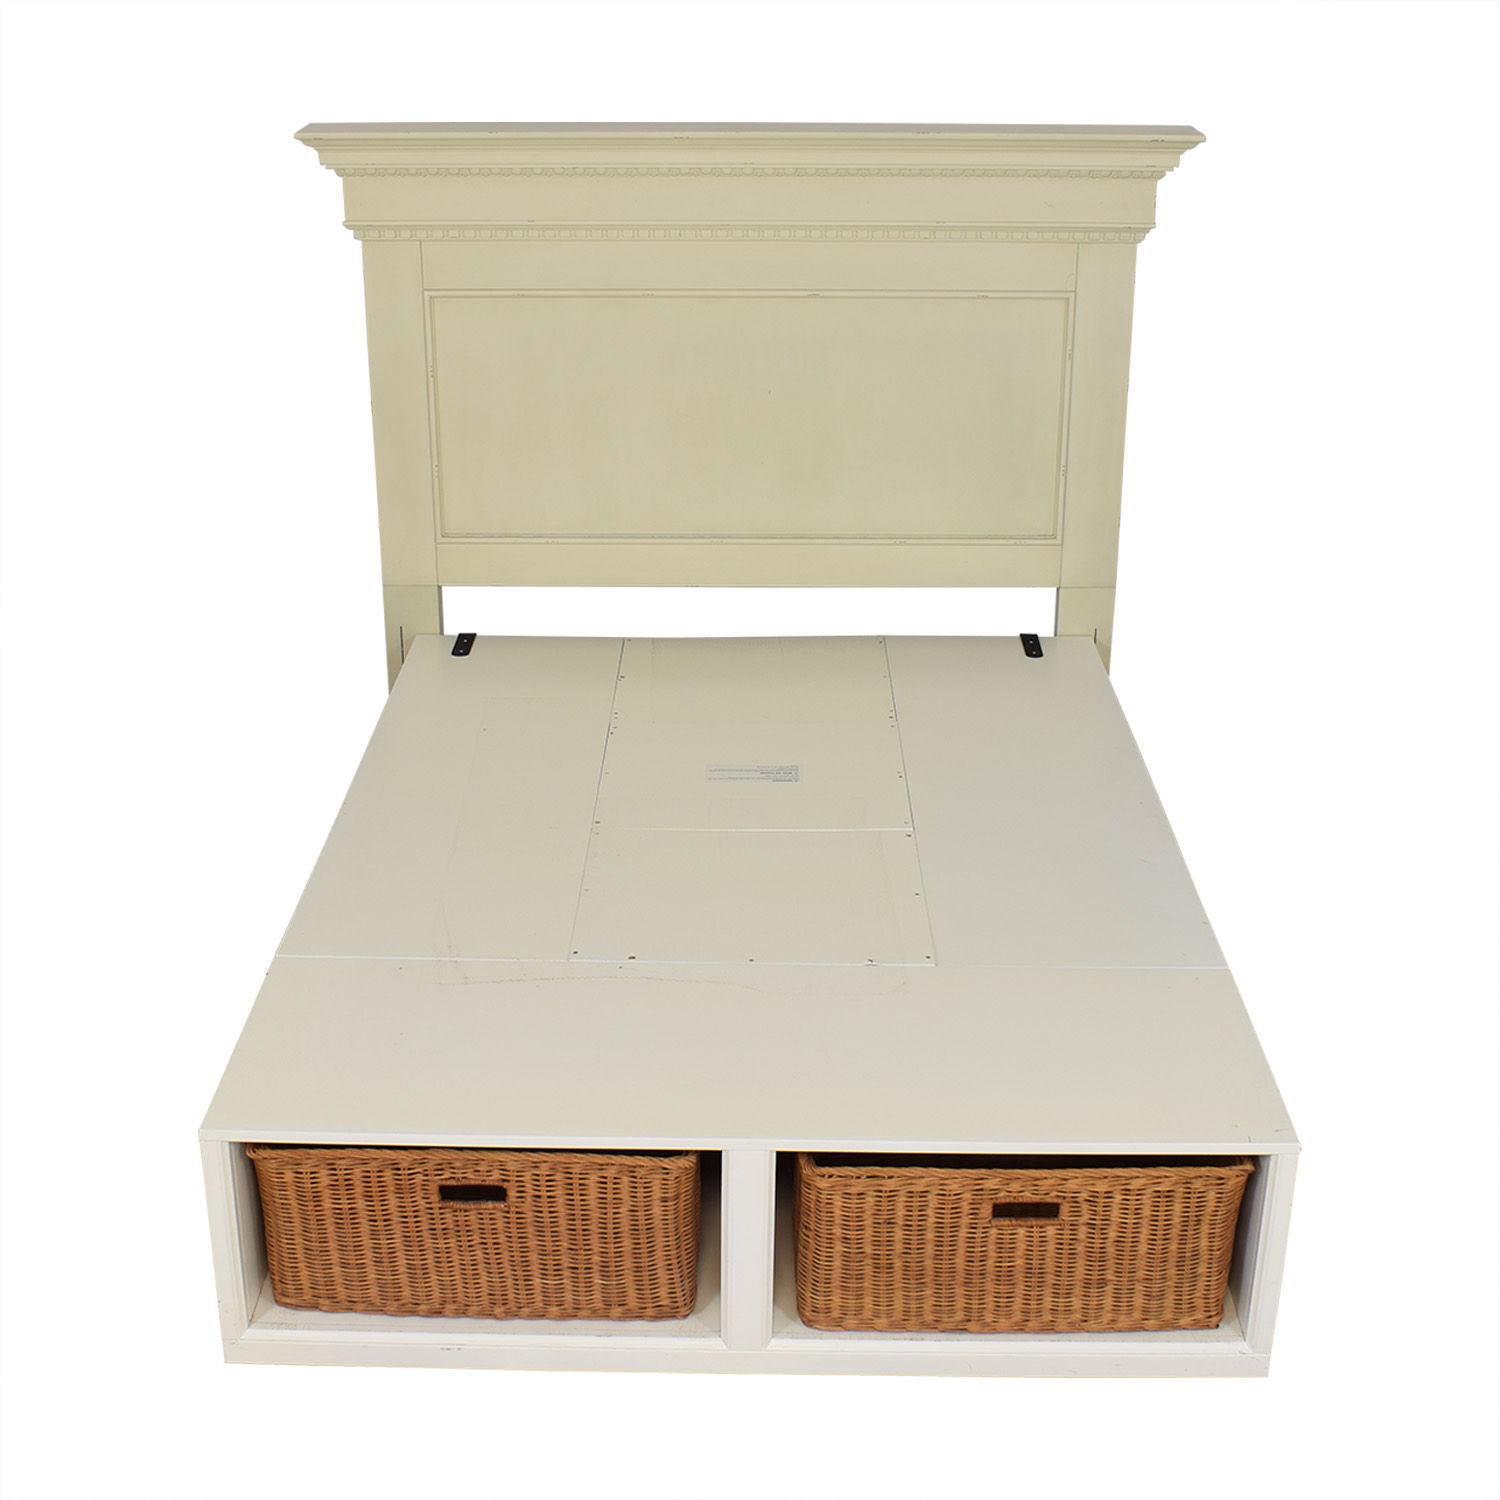 Pottery Barn Pottery Barn Addison Headboard and Stratton Storage Platform Bed with Baskets second hand